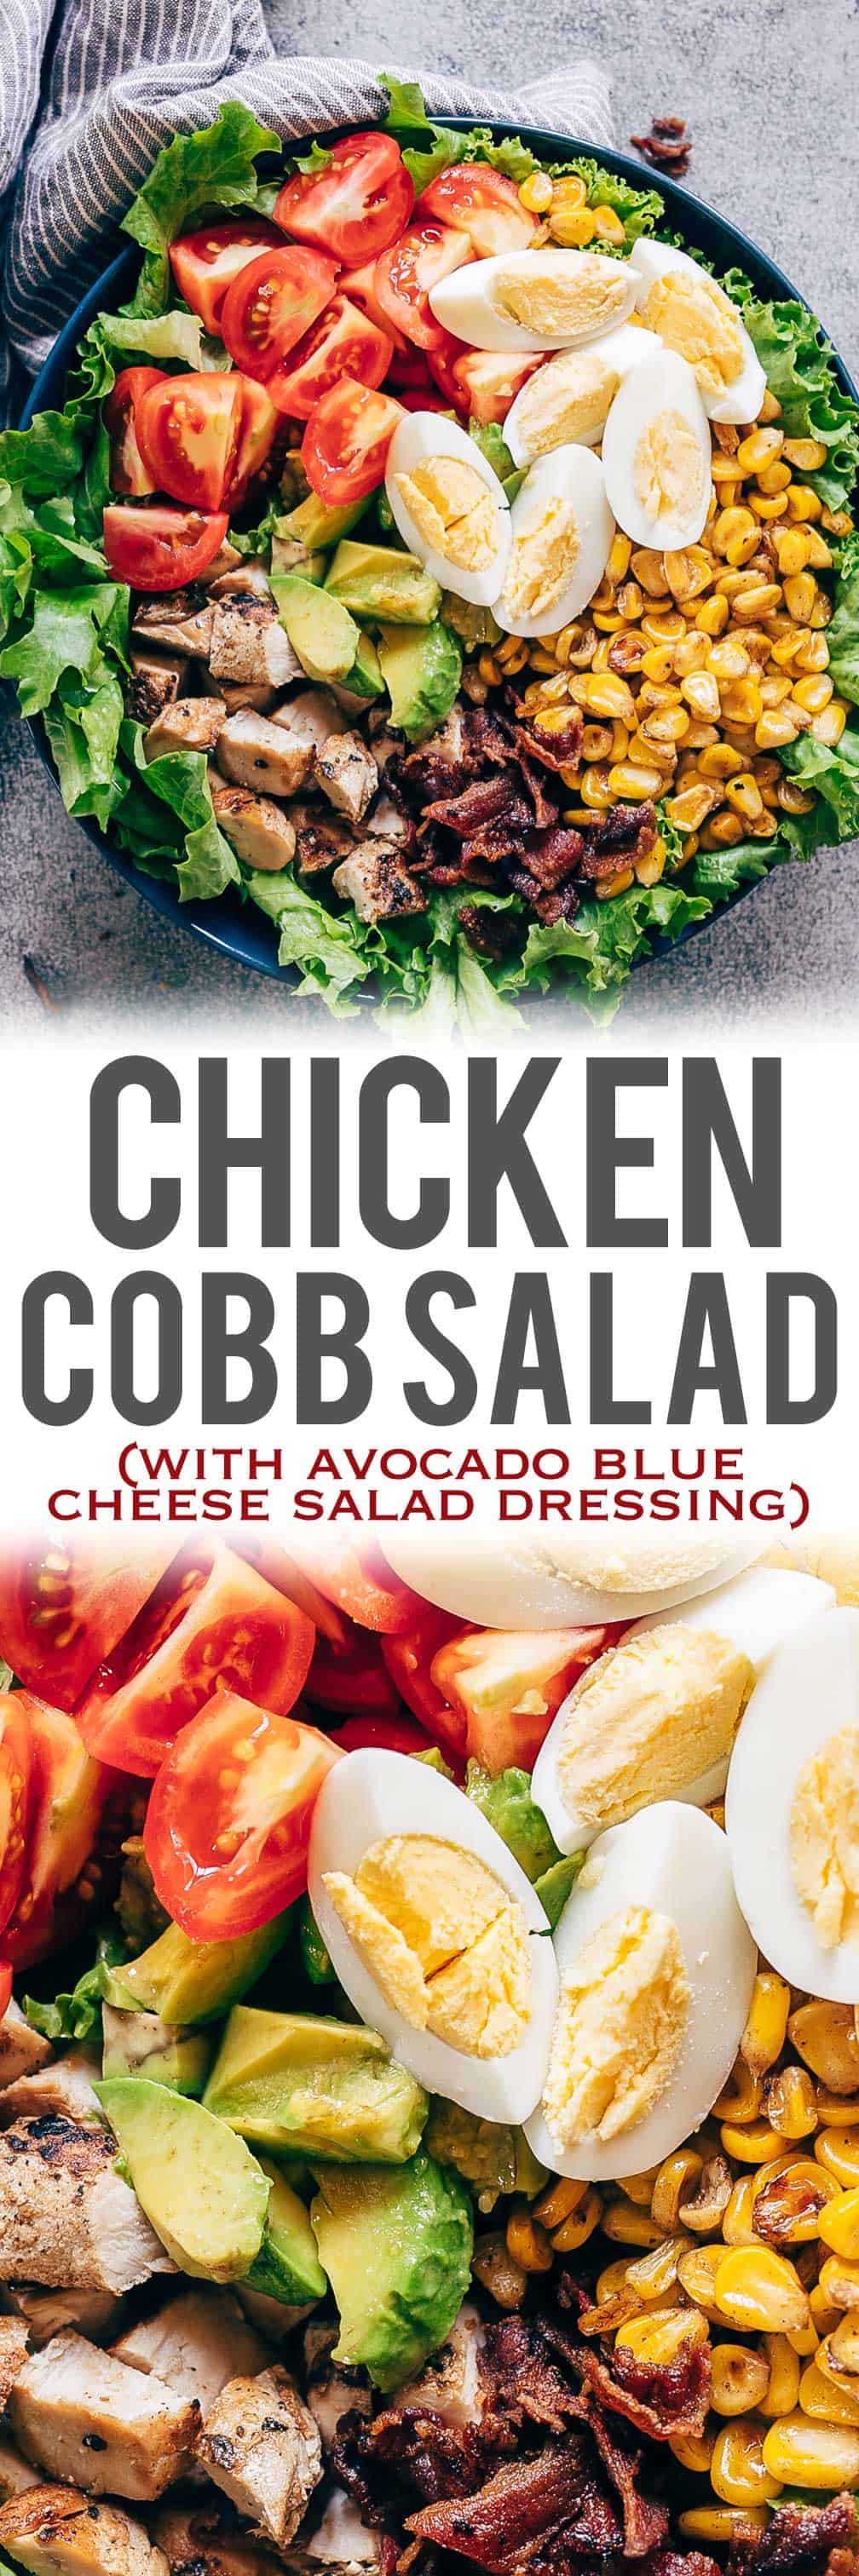 This is a classic layered chicken cobb salad recipe that has all the right fixings that includes lettuce, boiled eggs, grilled corn, bacon, grilled chicken, tomatoes and avocado! Serve this with a creamy avocado blue cheese dressing that\'s made with greek yogurt and you have dinner sorted. This isn\'t just a salad, it\'s a meal! Perfect for a crowd. Use steak instead of chicken or make it vegetarian #salad #recipe #chicken #dinner #easy